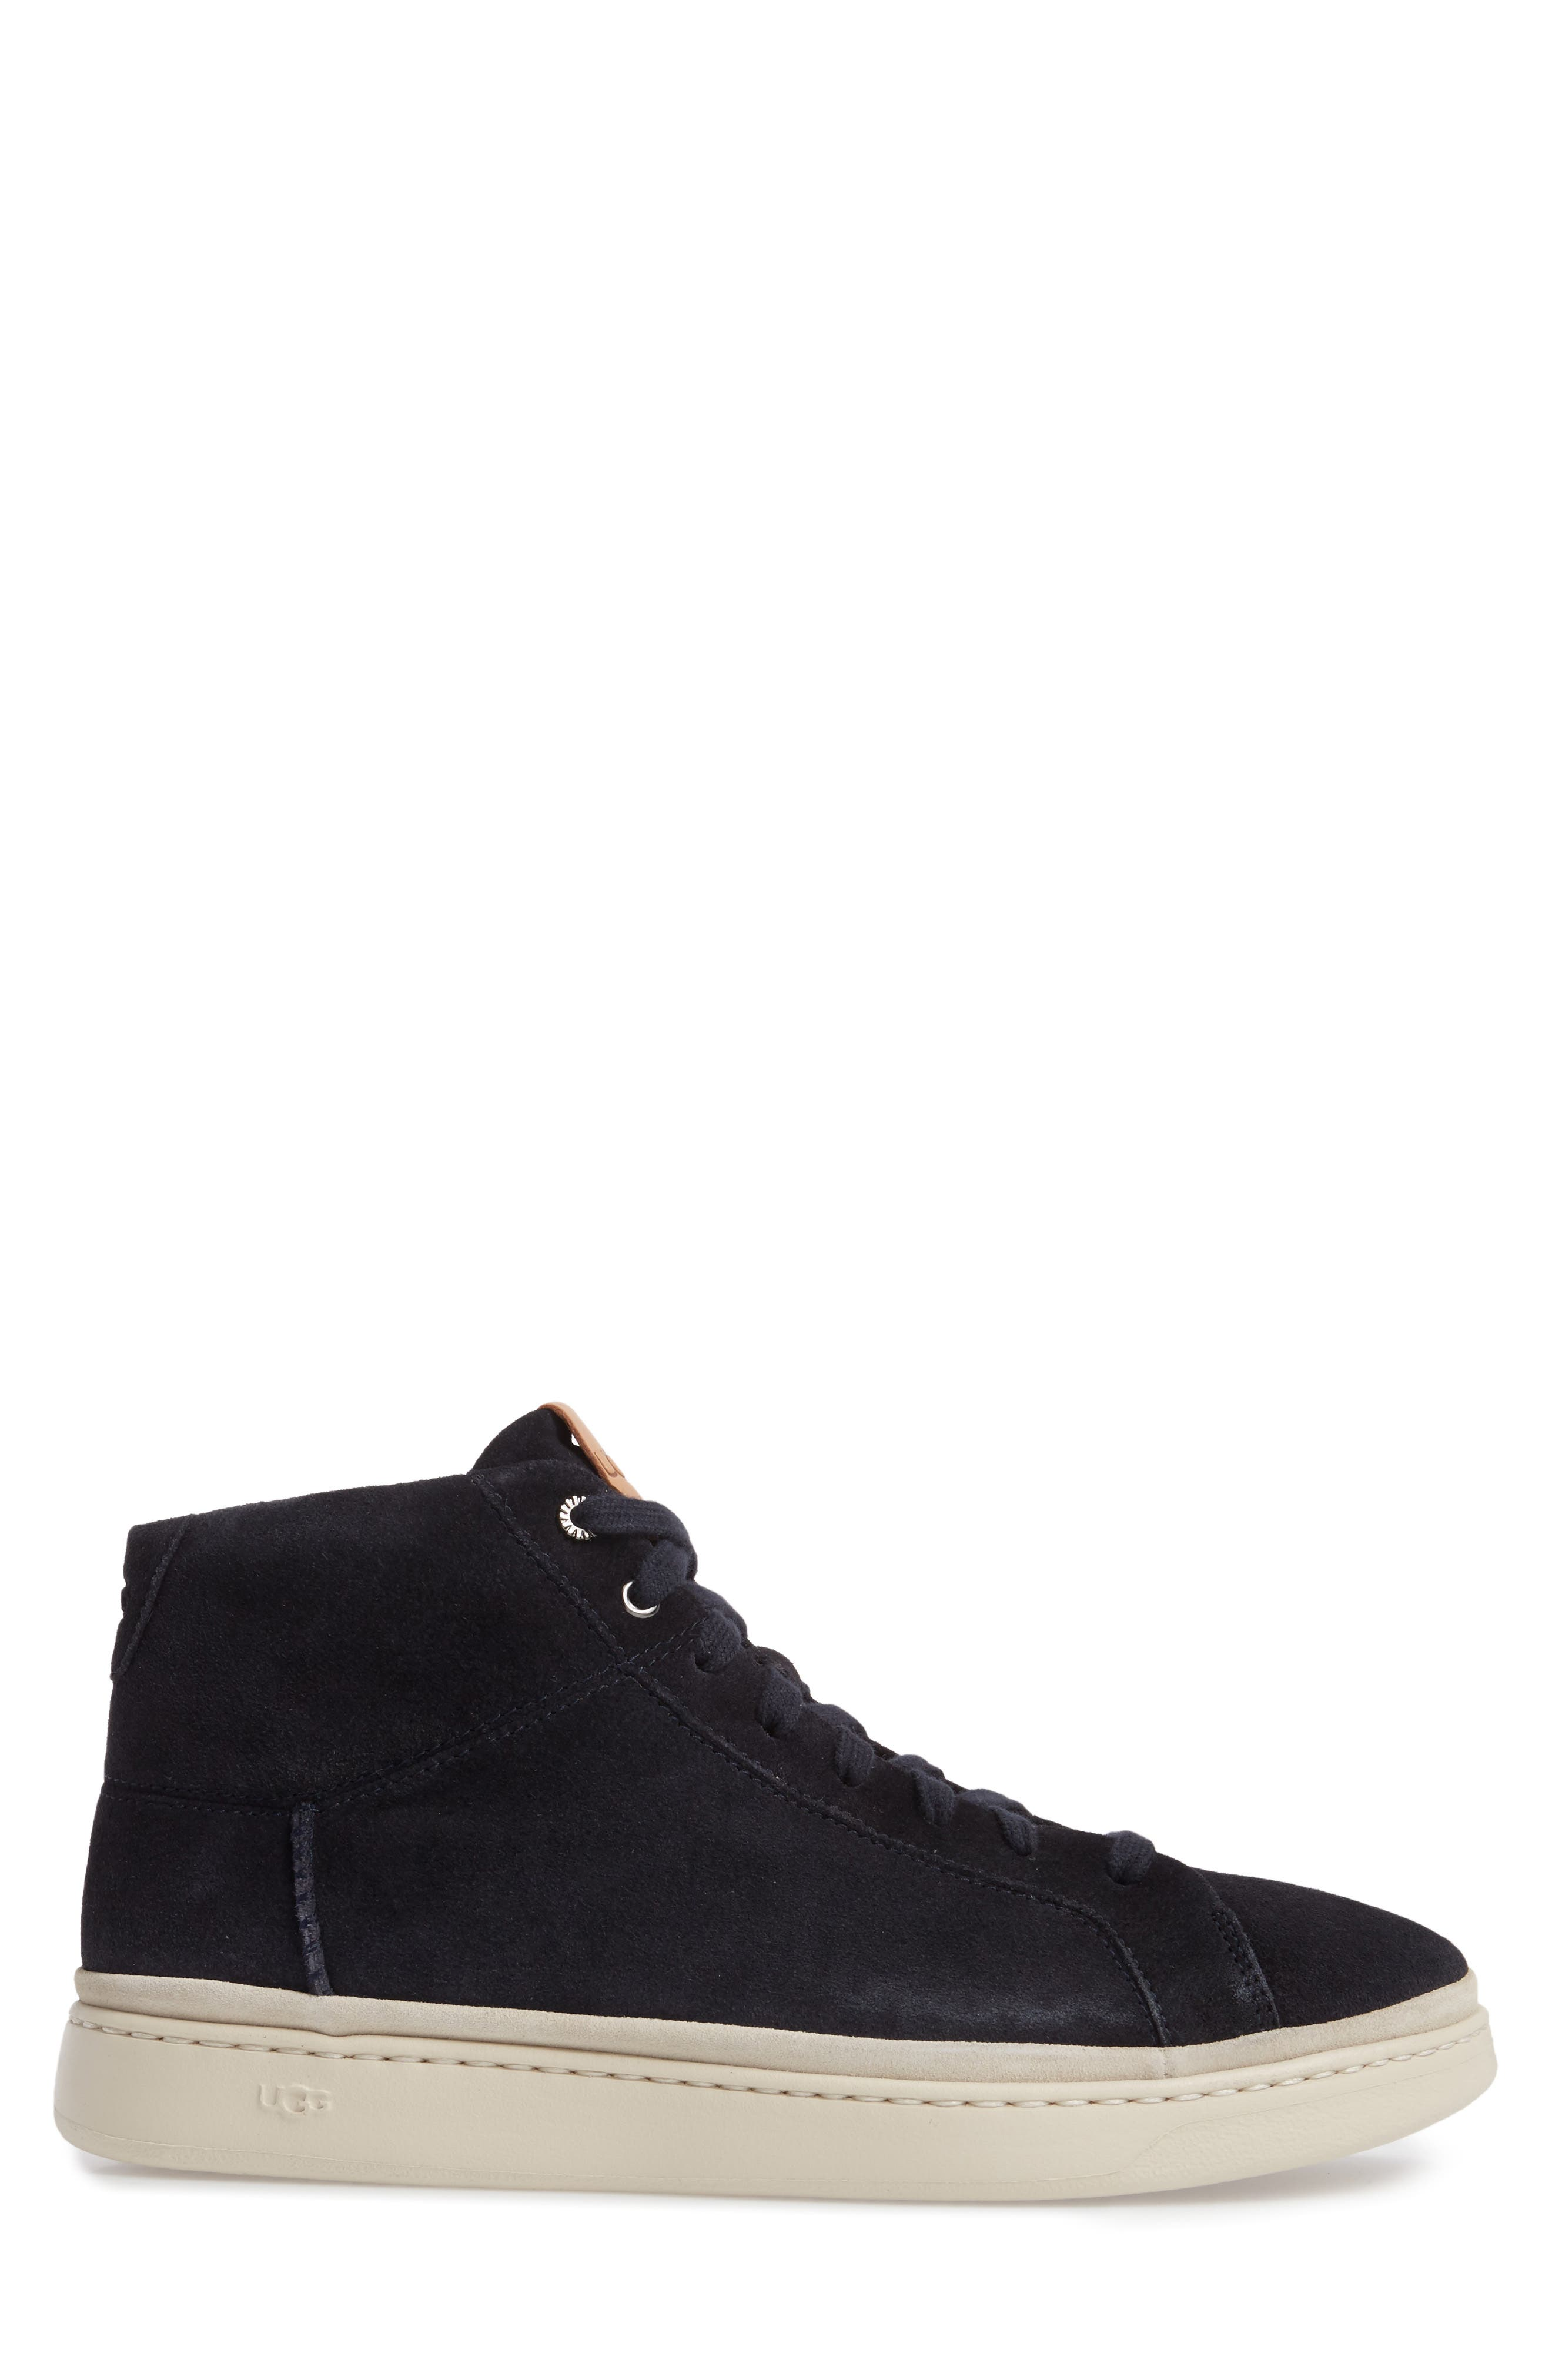 Cali High Top Sneaker,                             Alternate thumbnail 3, color,                             NAVY LEATHER